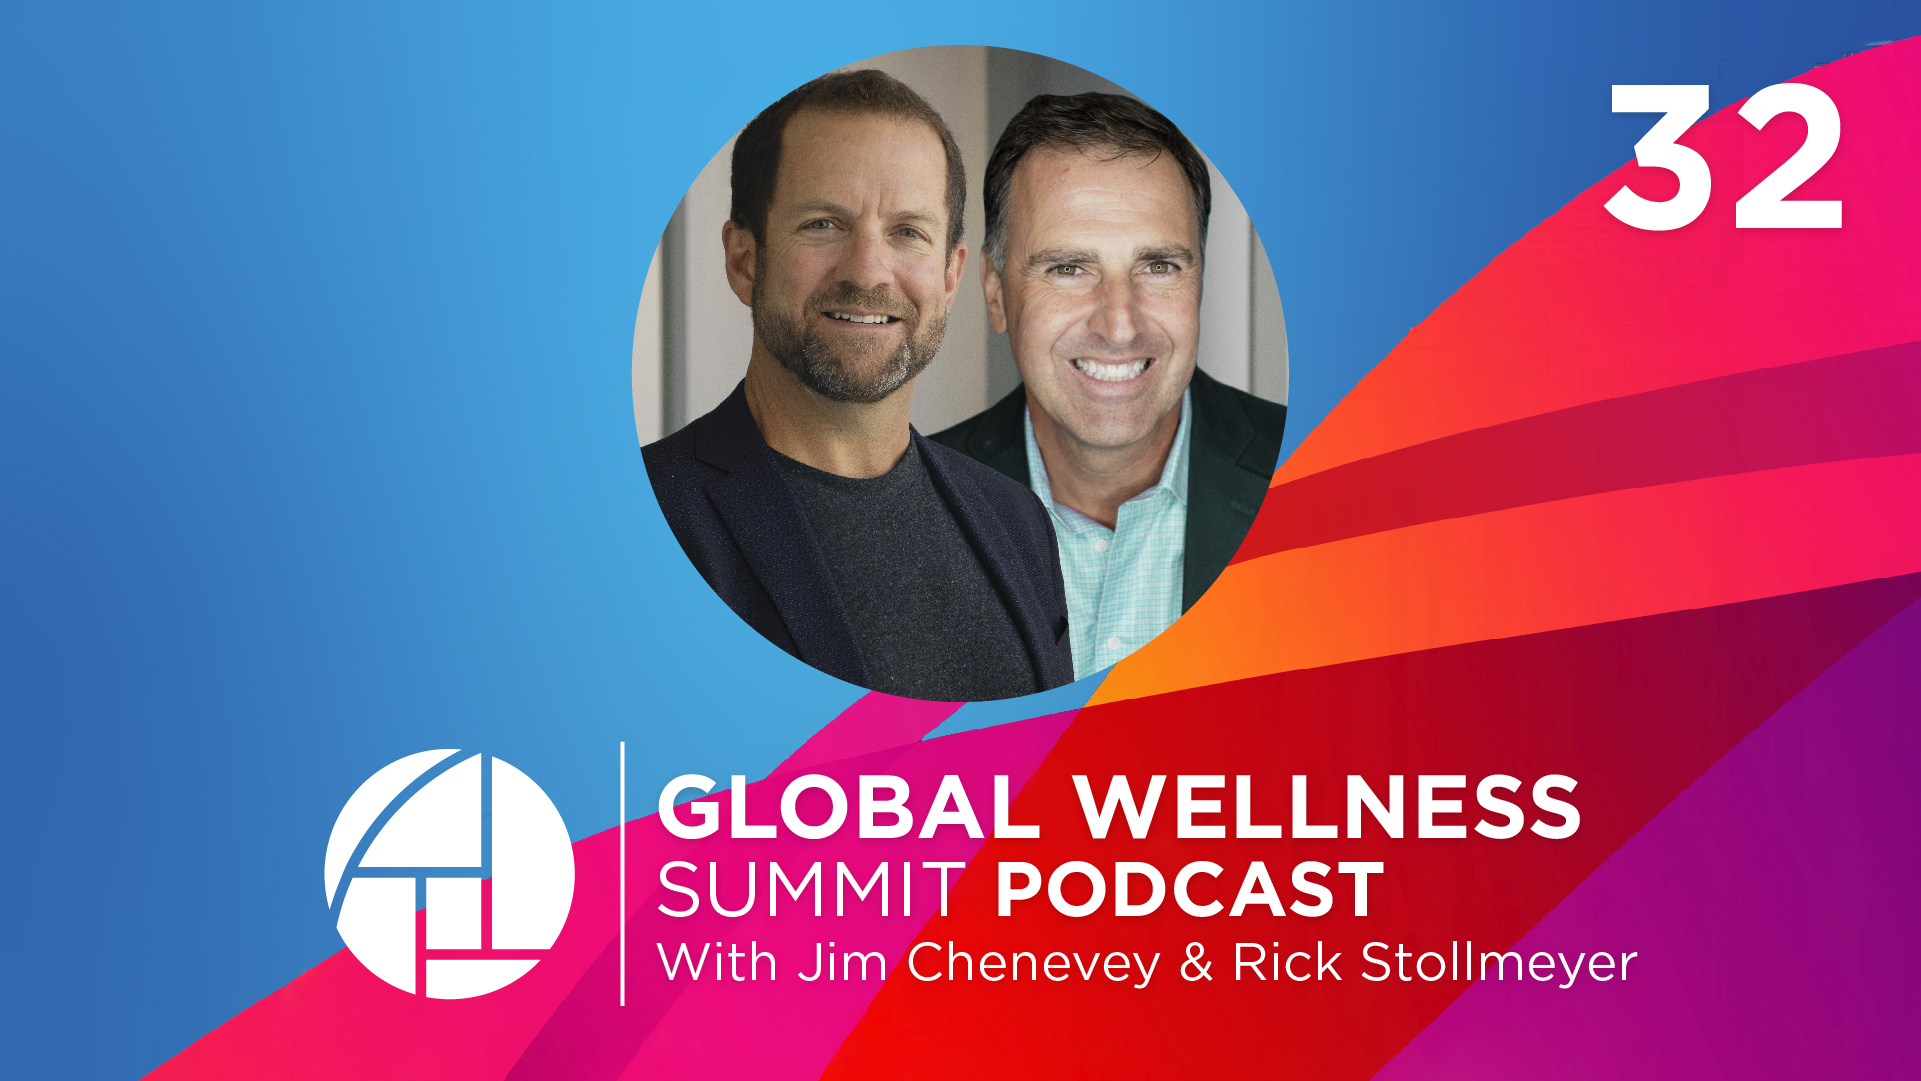 E32. How Two Businesses Transformed to Help Medical Providers, COVID-19 Patients, & Wellness Entrepreneurs - with Jim Chenevey & Rick Stollmeyer